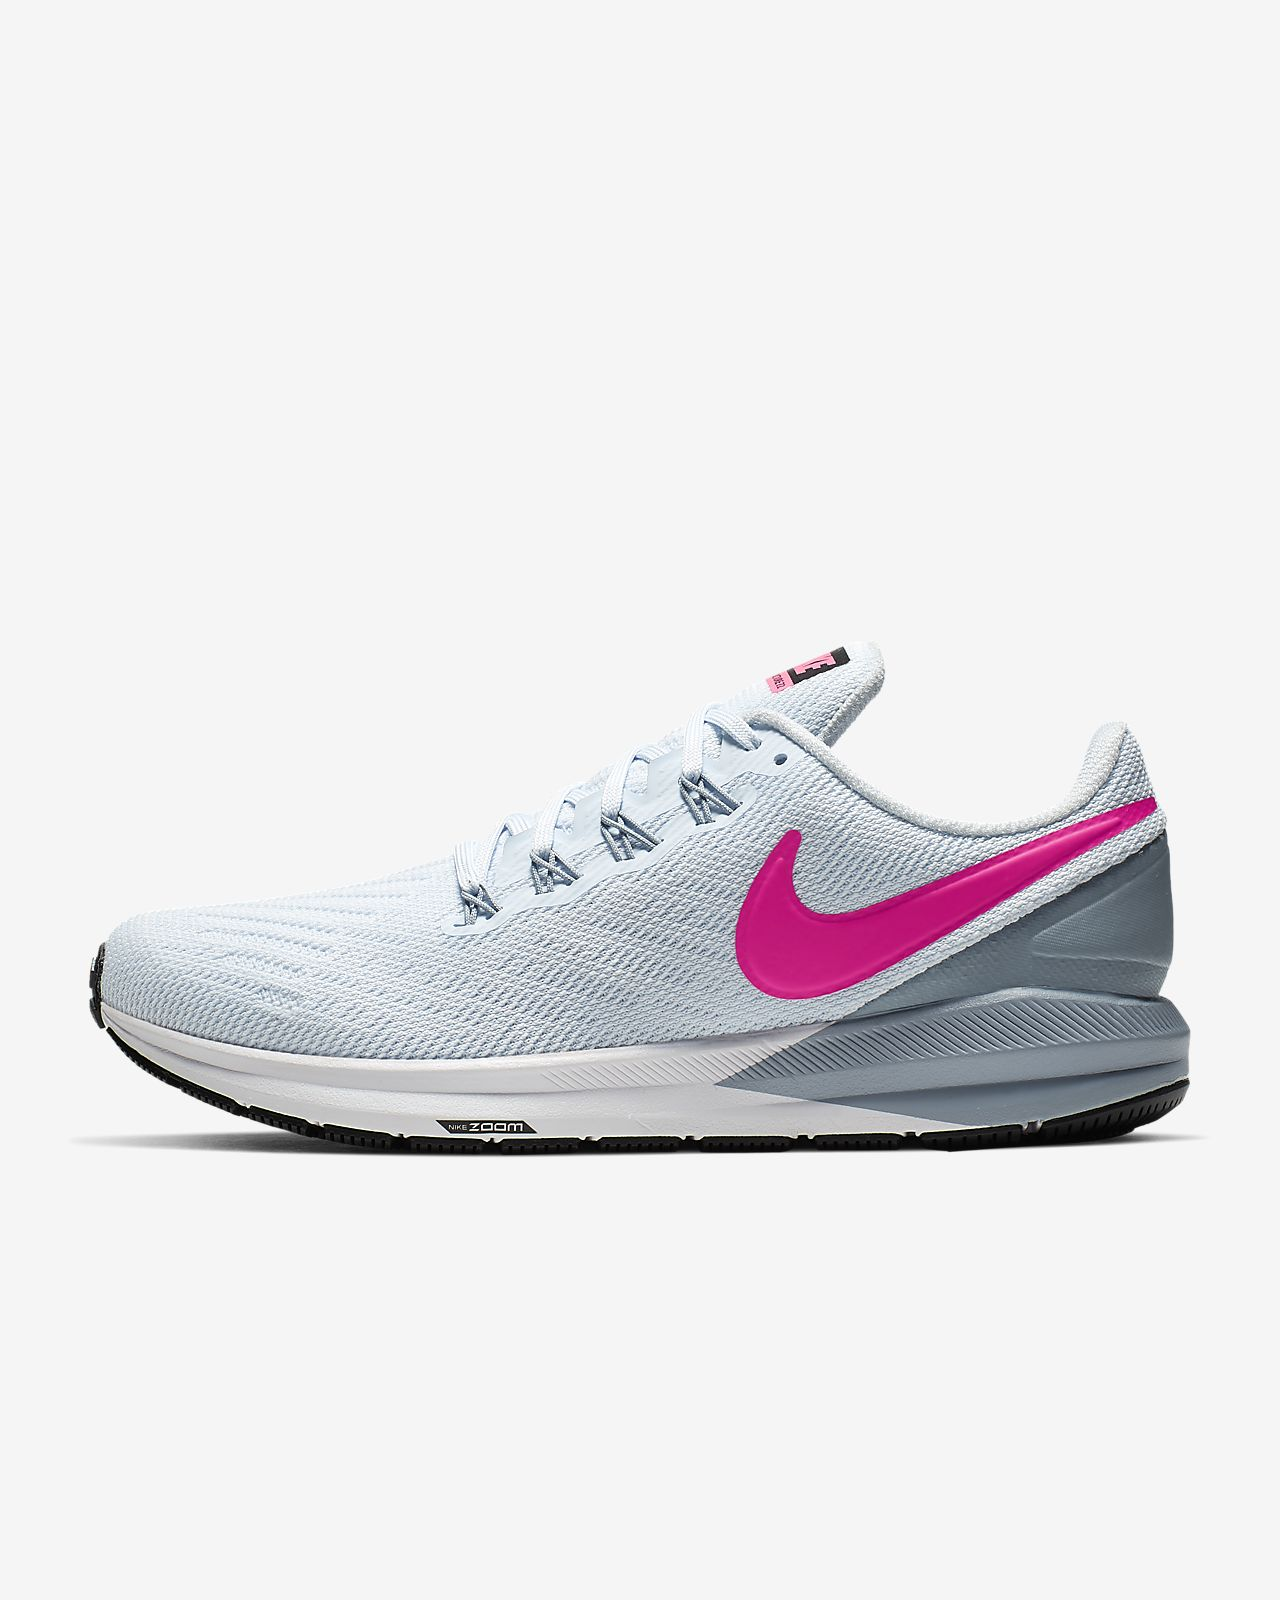 best website fdd21 7735a ... Chaussure de running Nike Air Zoom Structure 22 pour Femme